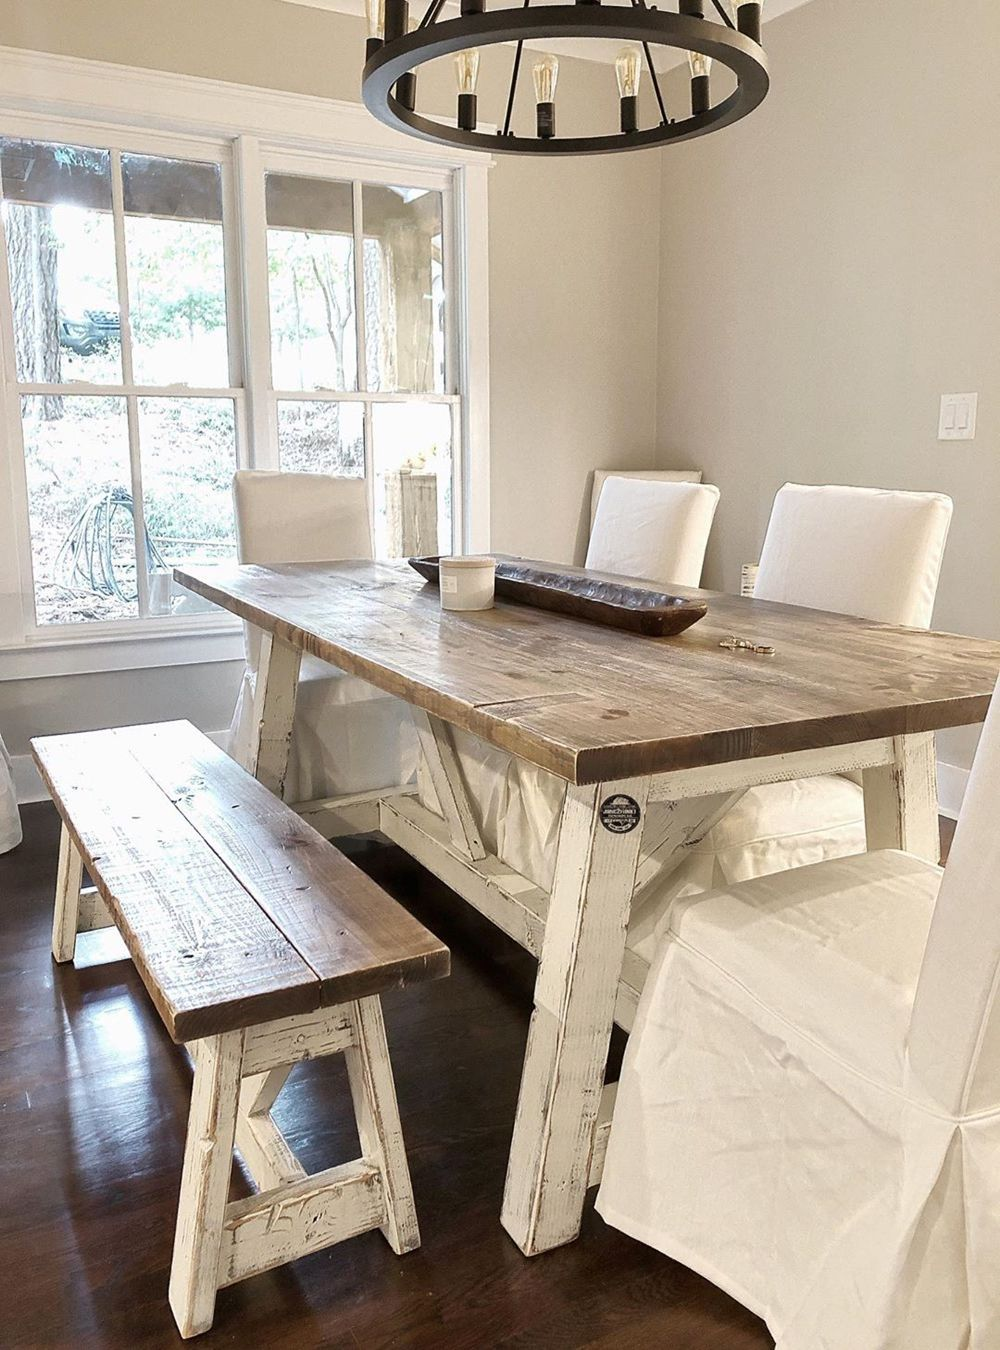 17+ Beautiful Rustic Kitchen Table with Bench Pictures ...